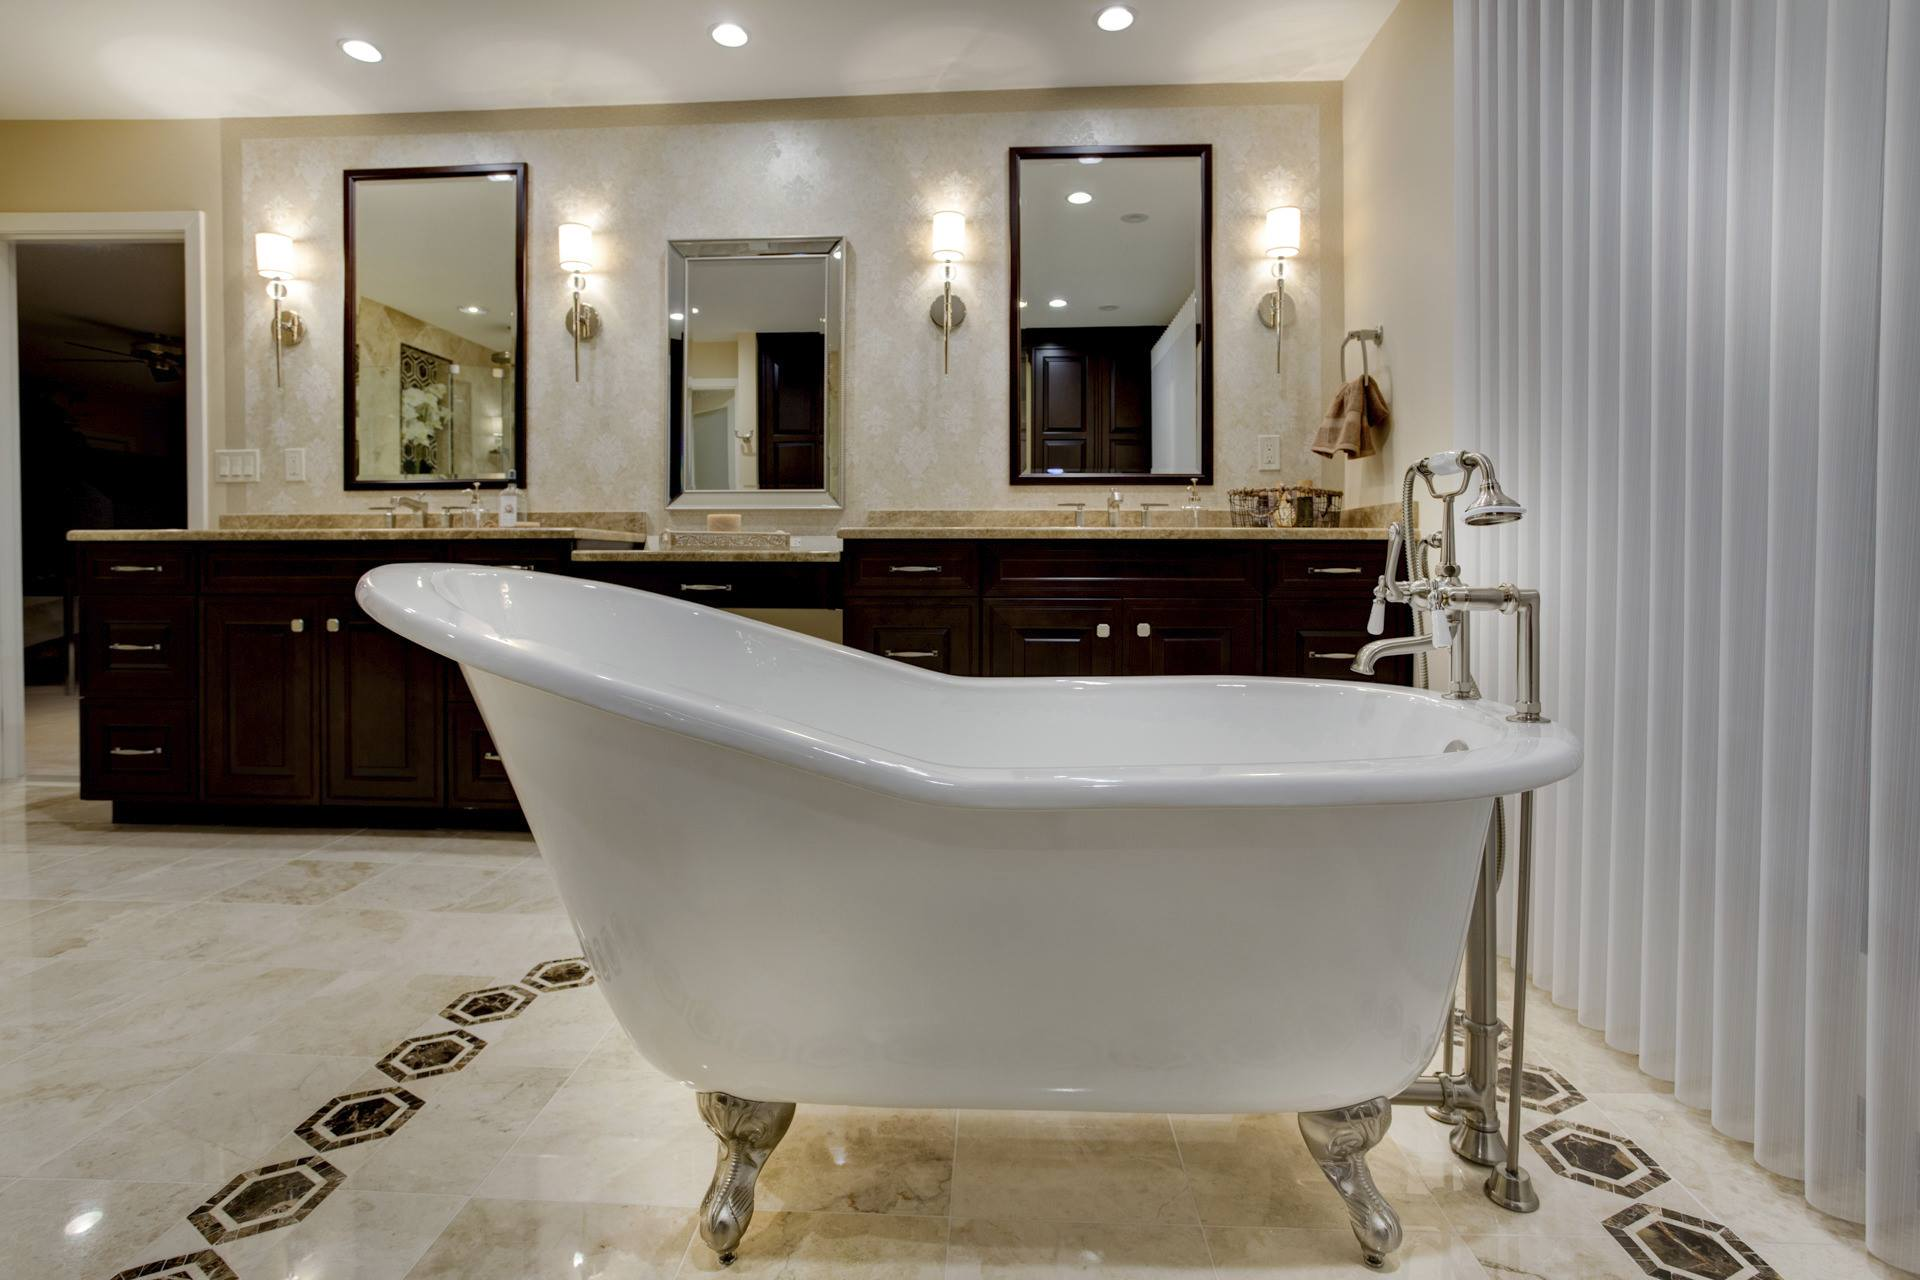 refined bathroom with classic clawfoot tub